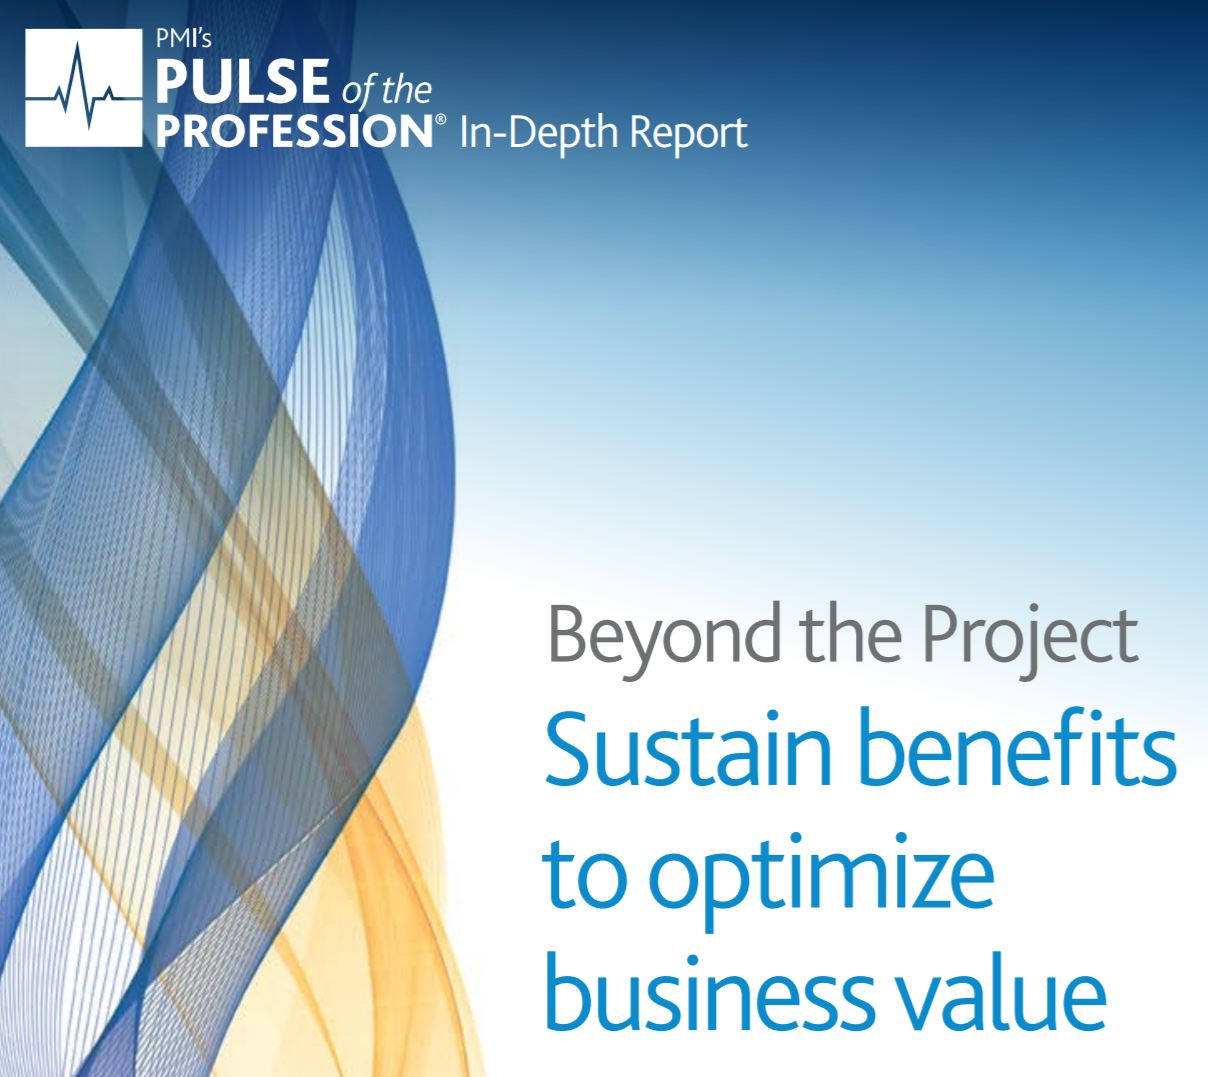 pmi-pulse-sustain-benefits.jpg